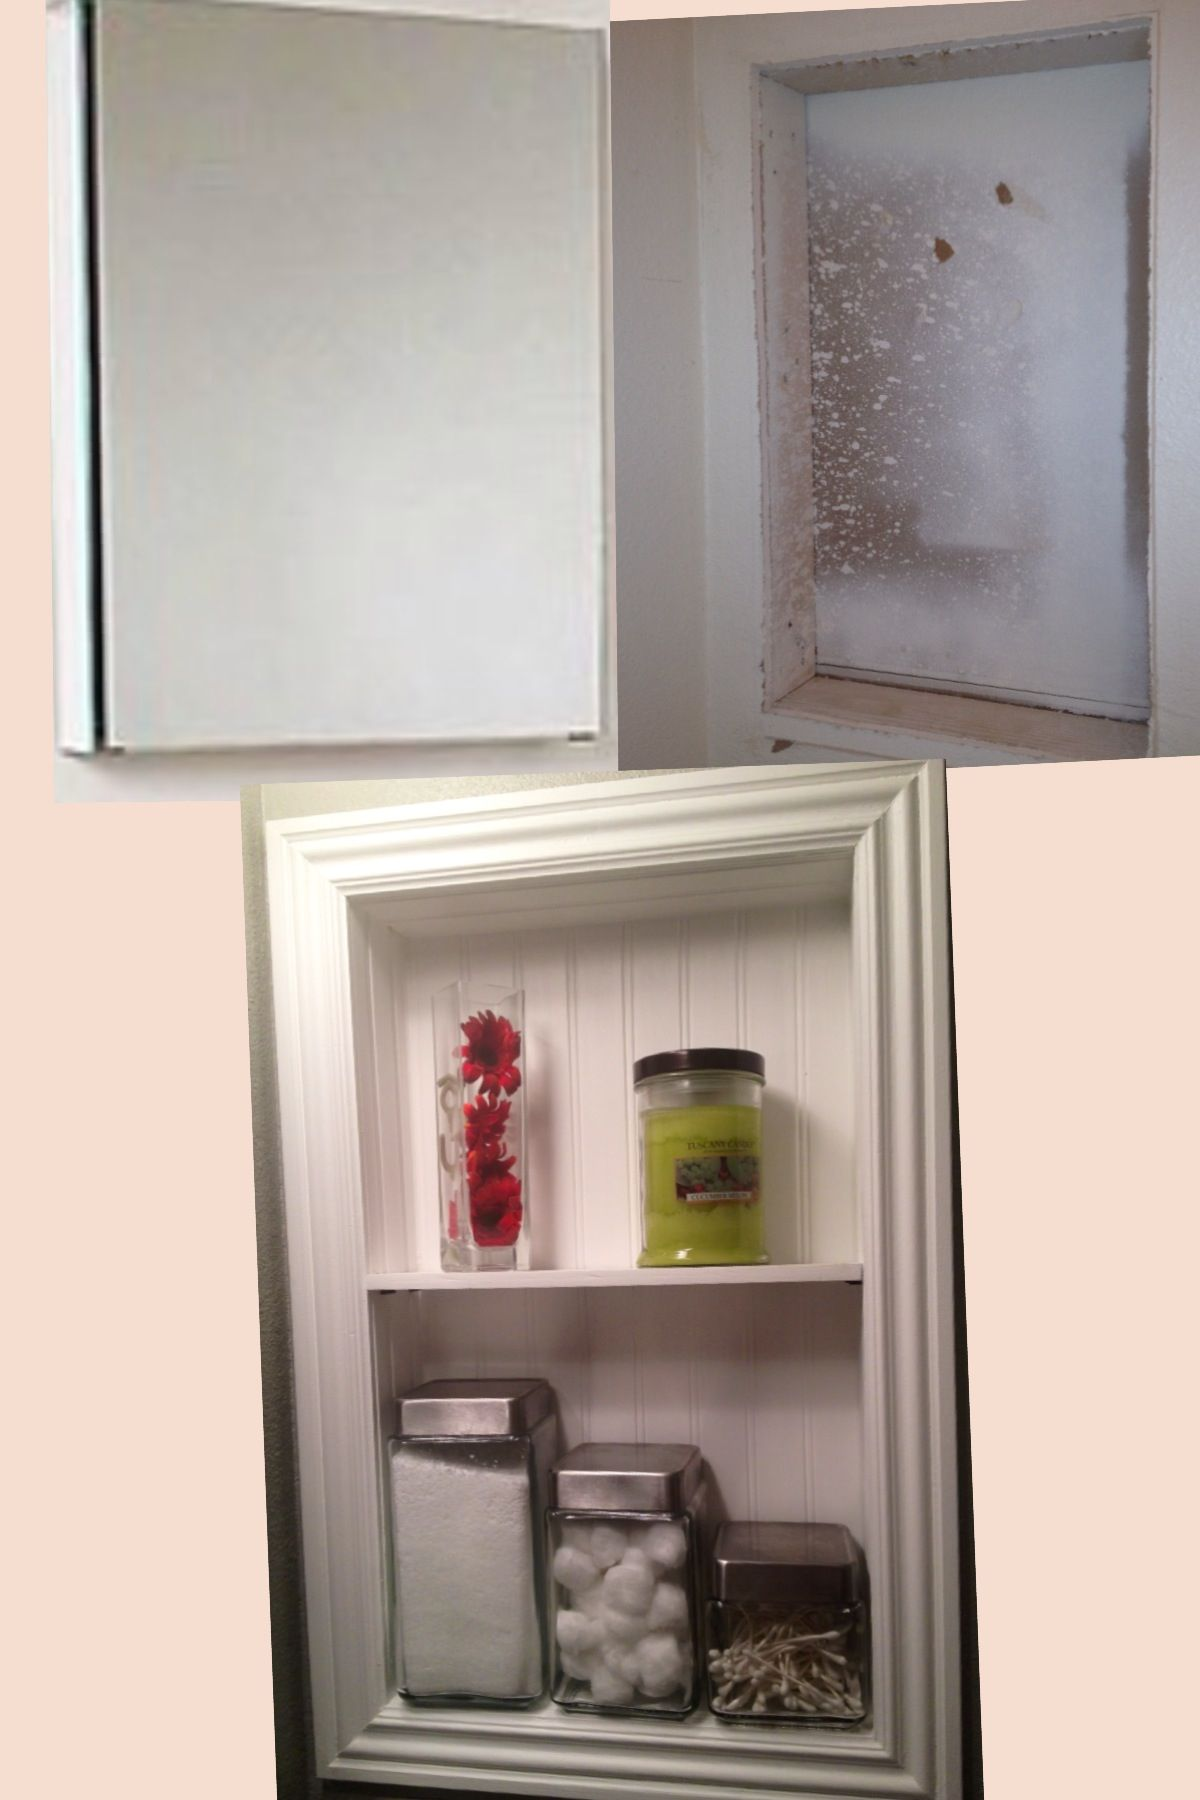 medicine door cabinets article cabinet kohler products new crop rgb replace bathroom verdera us htm